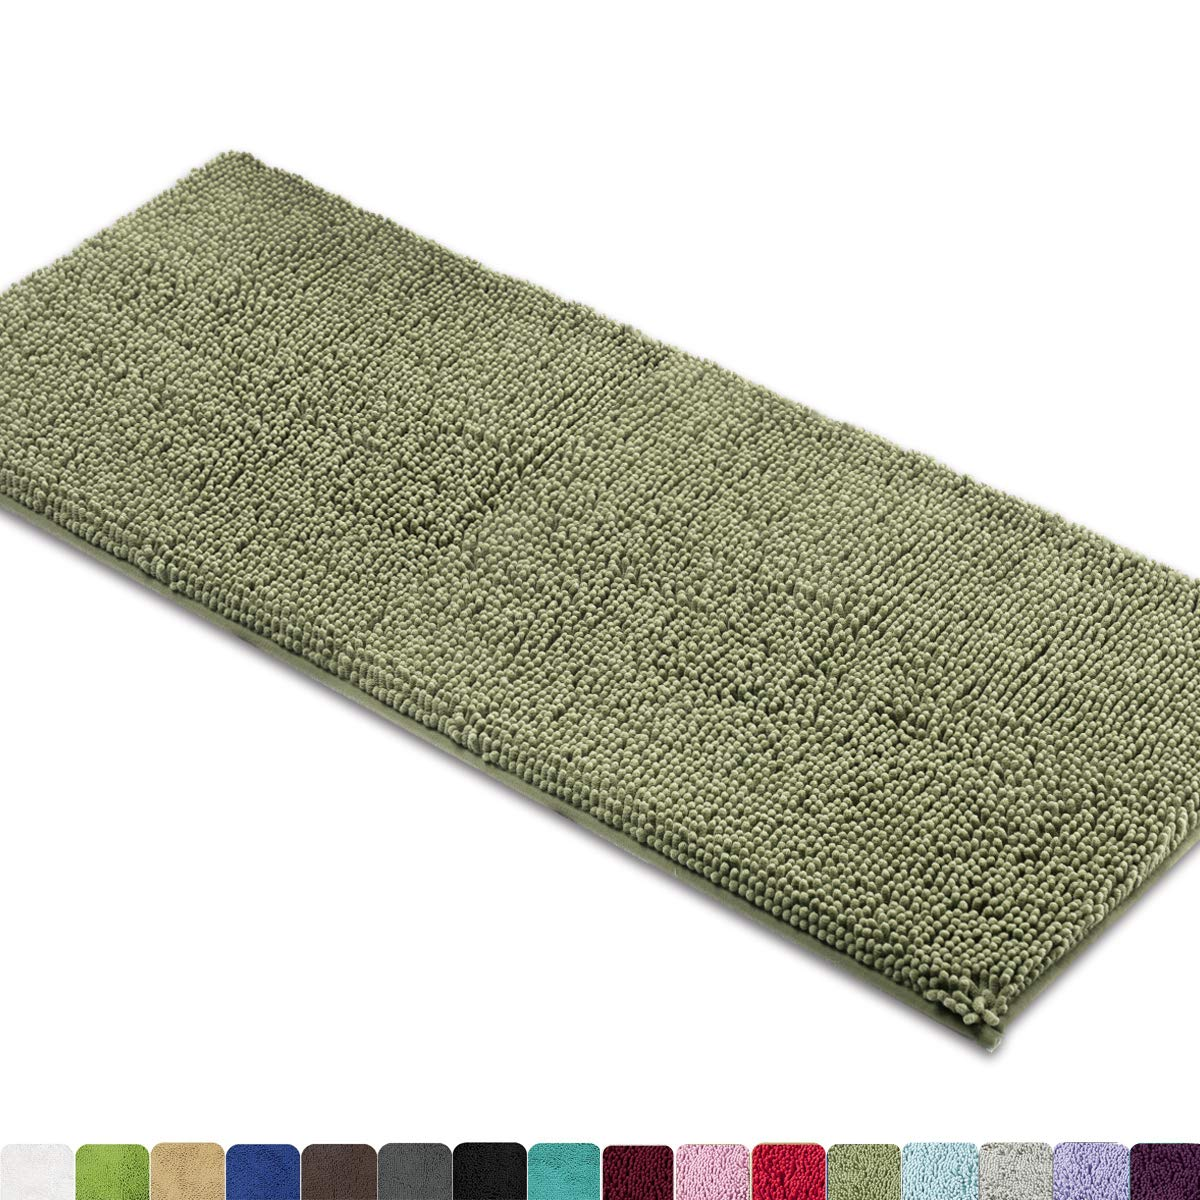 MAYSHINE Bath mat Runners for Bathroom Rugs,Long Floor mats,Extra Soft, Absorbent, Thickening Shaggy Microfiber,Machine-Washable, Perfect for Doormats,Tub, Shower (27.5x47 inches, Sage Green) by MAYSHINE (Image #1)